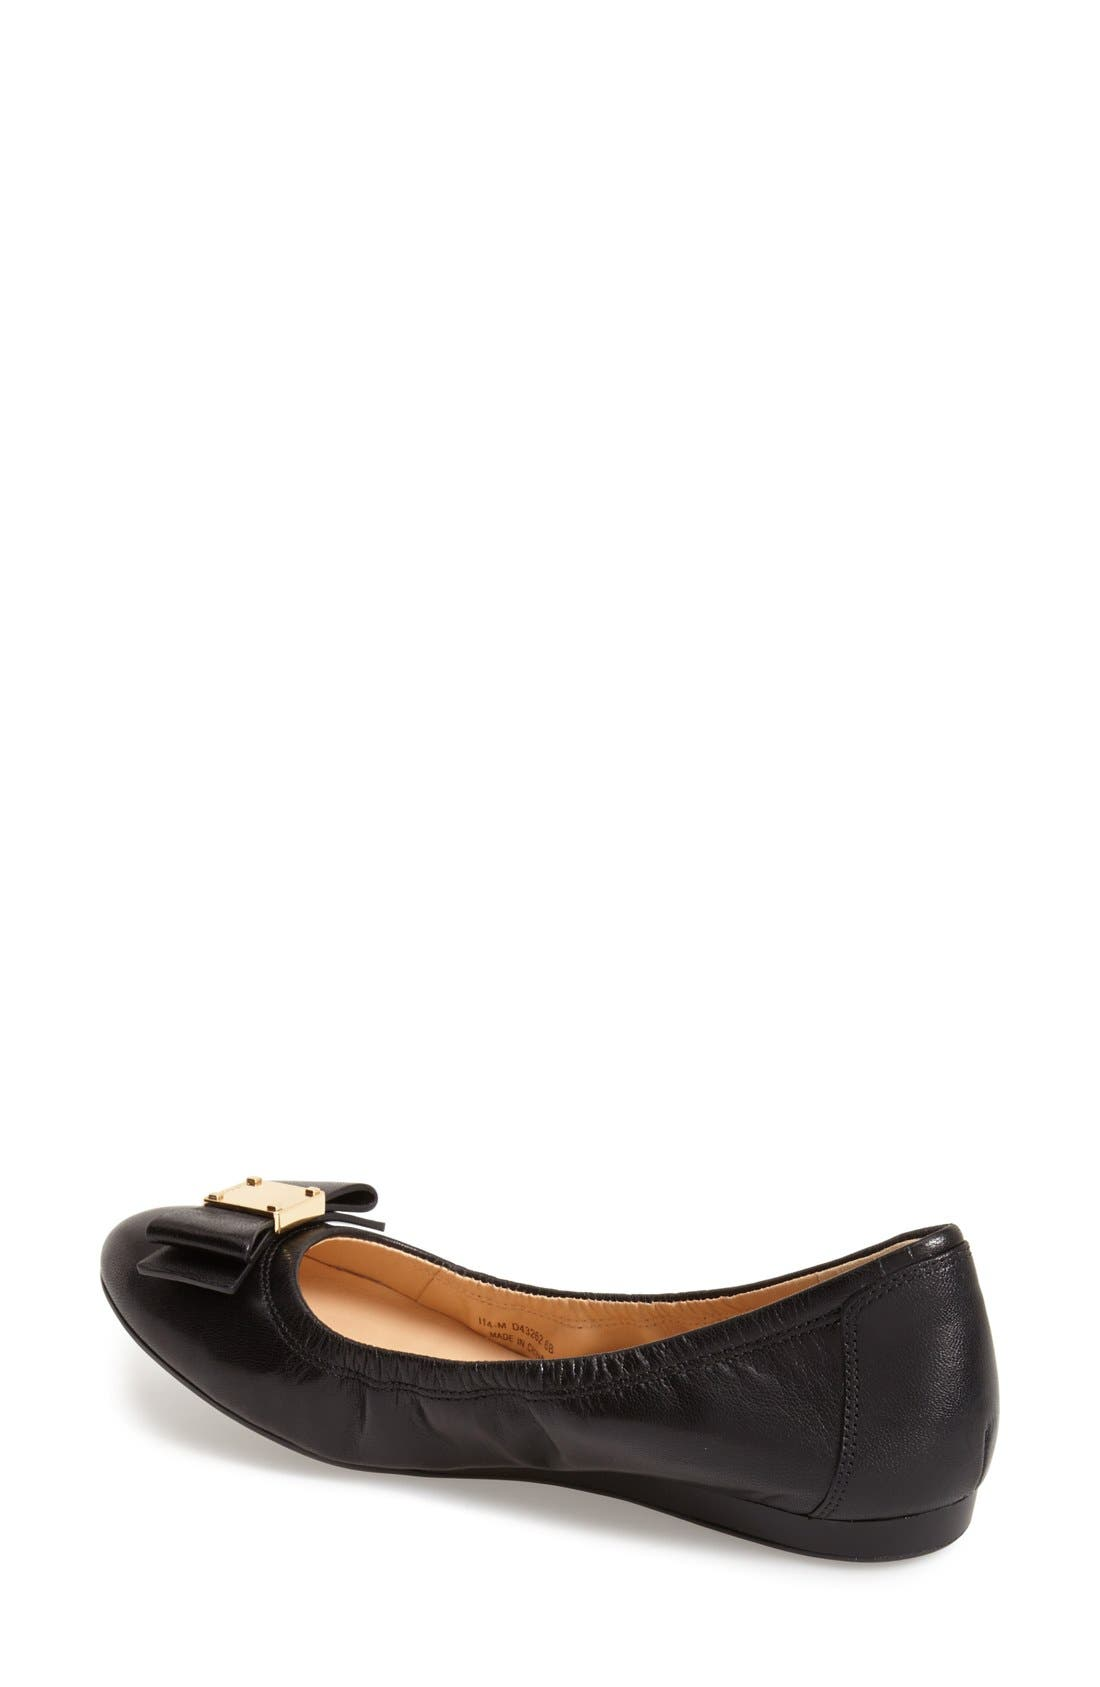 COLE HAAN, 'Tali' Bow Ballet Flat, Alternate thumbnail 6, color, BLACK